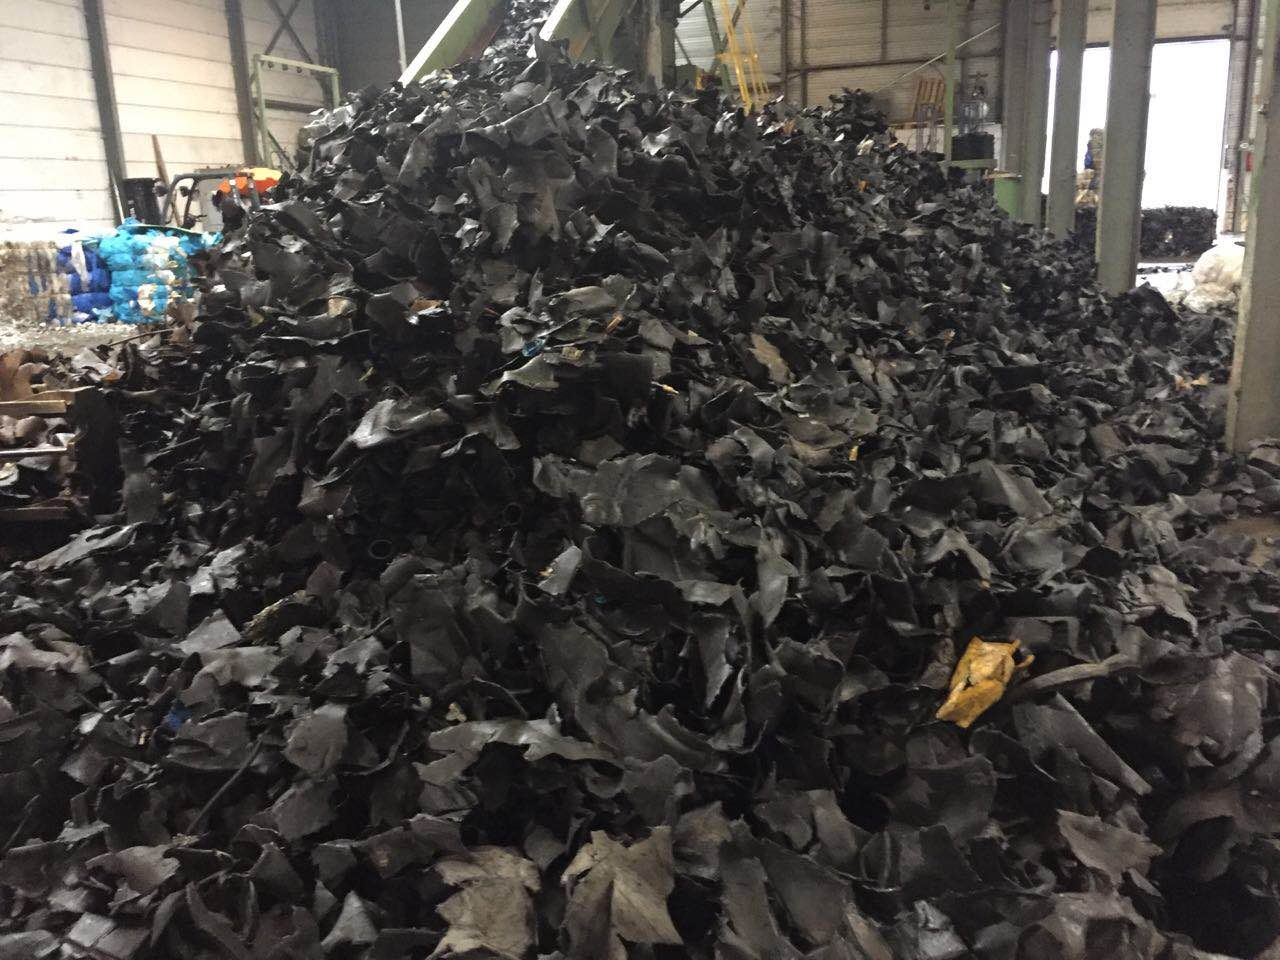 HDPE tanks shredded in bales